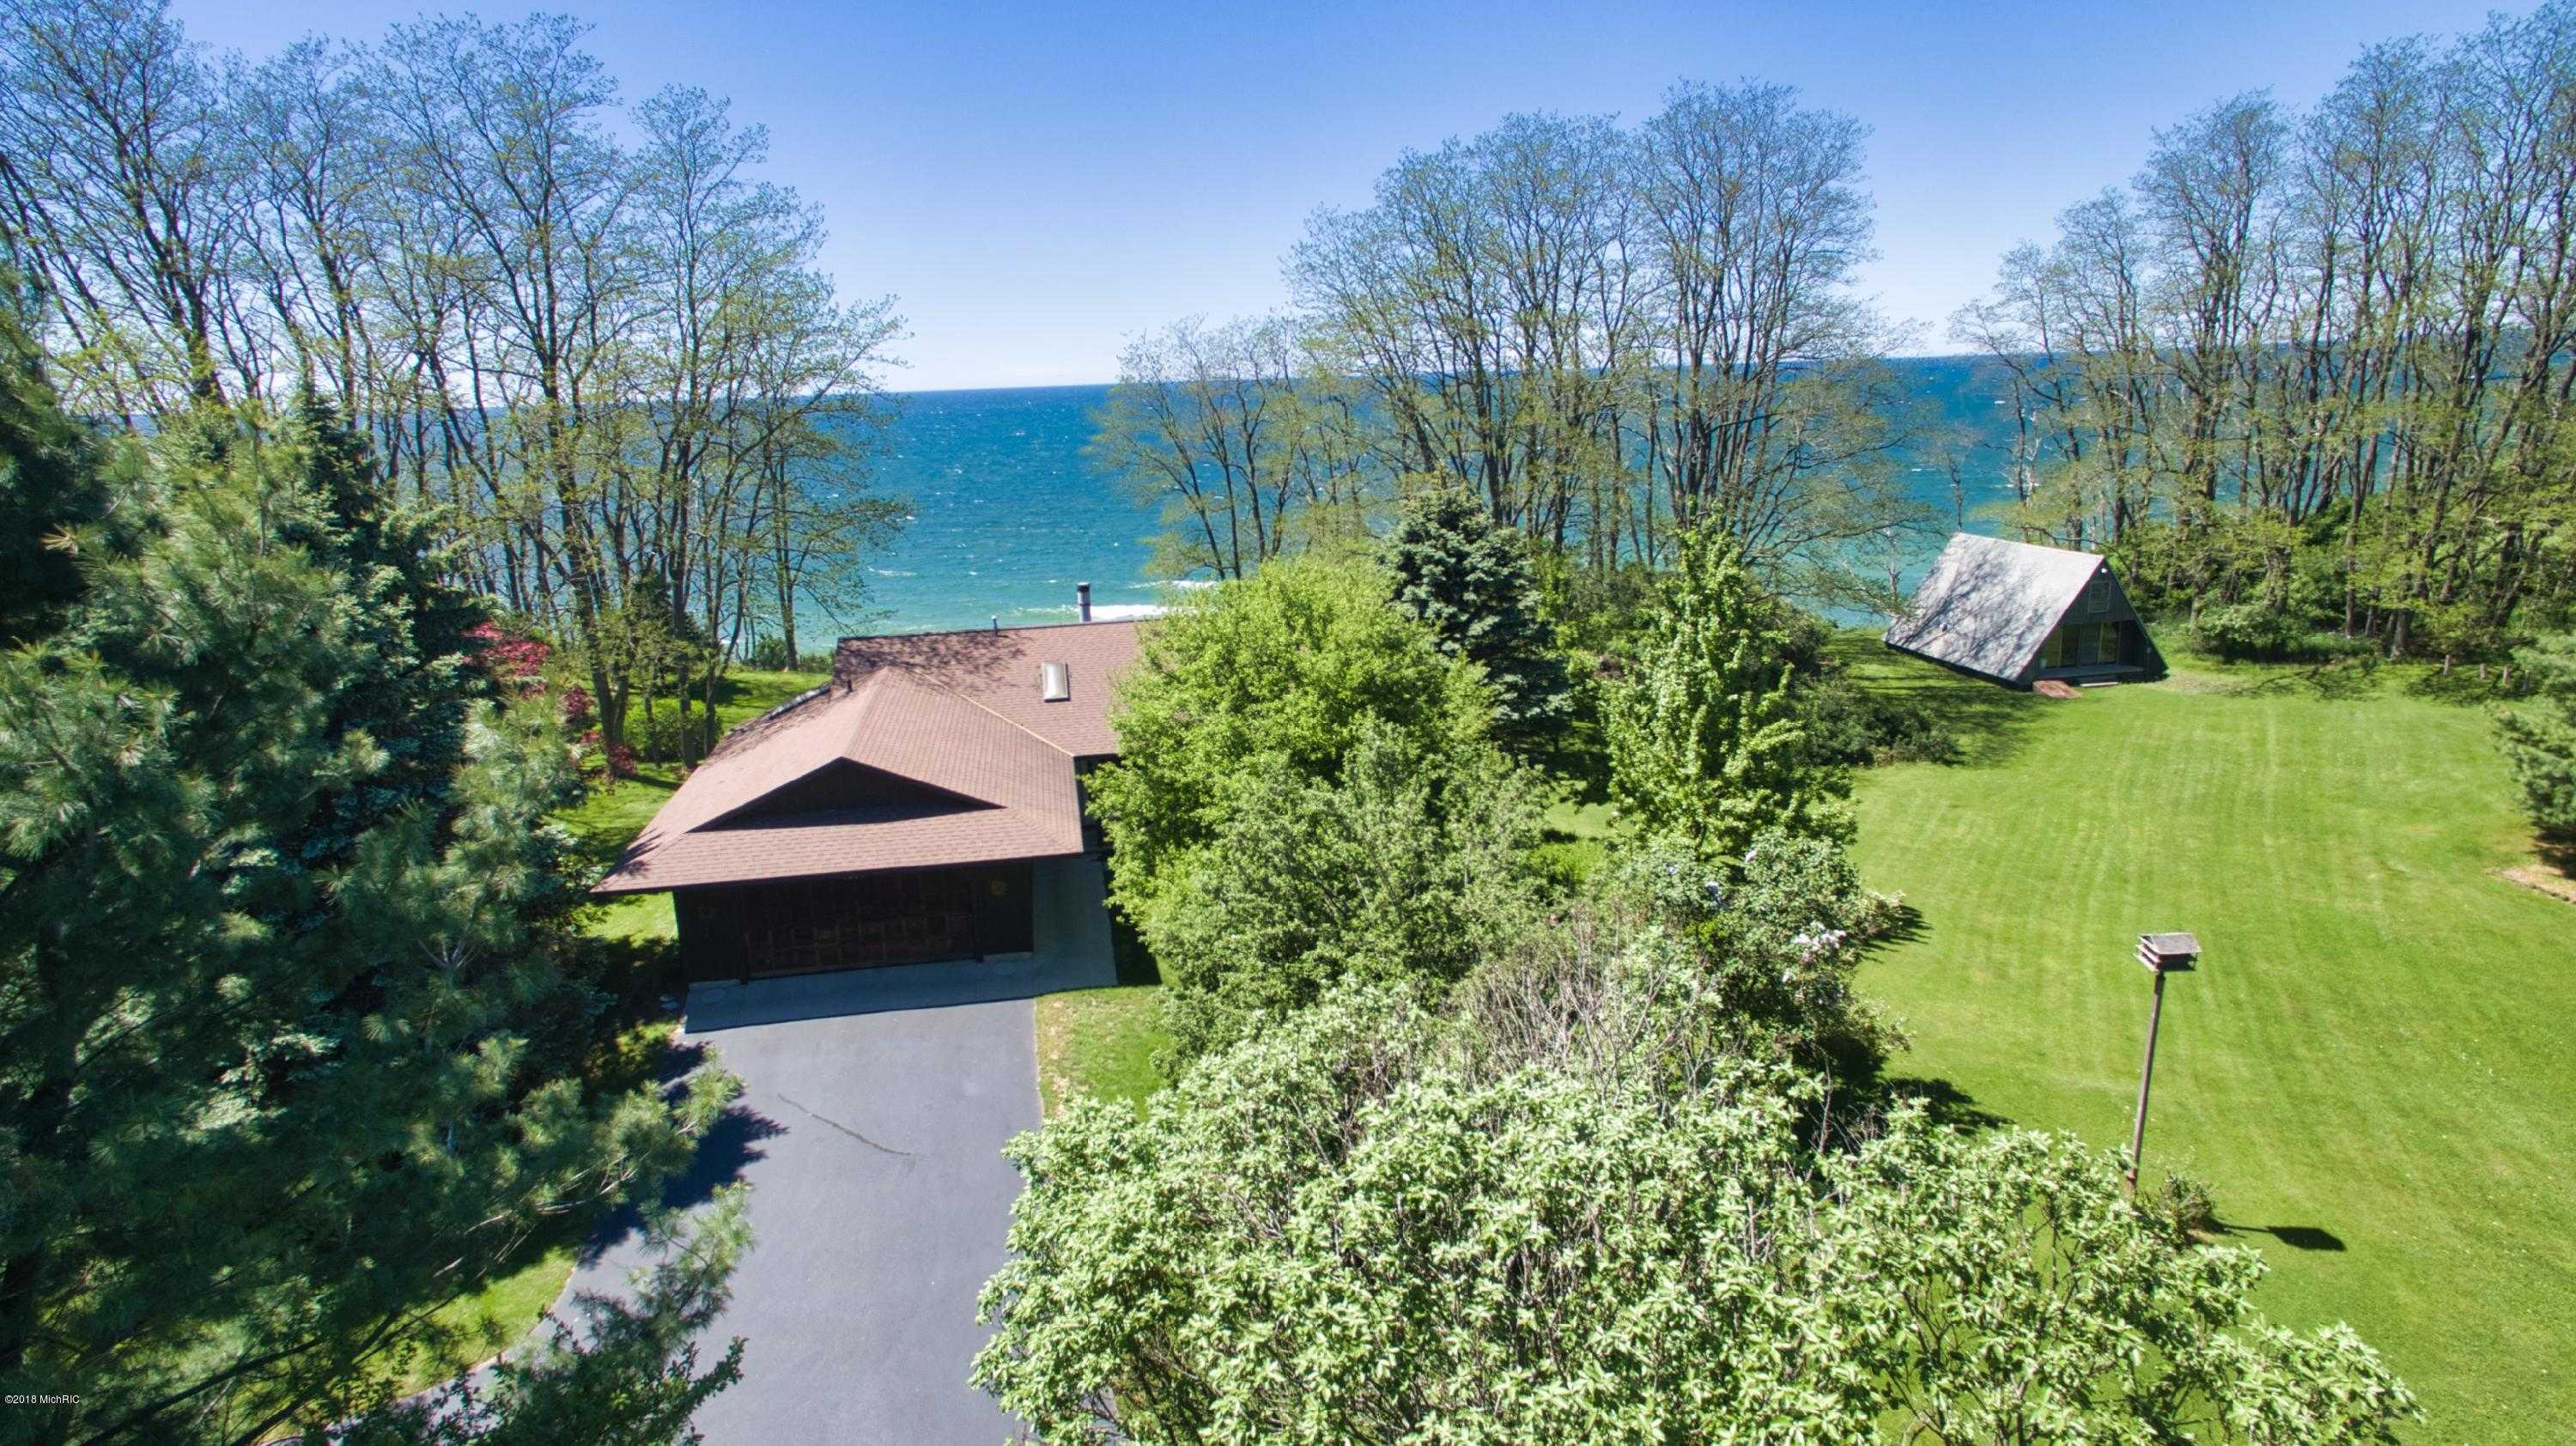 $865,000 - 3Br/2Ba -  for Sale in Manistee